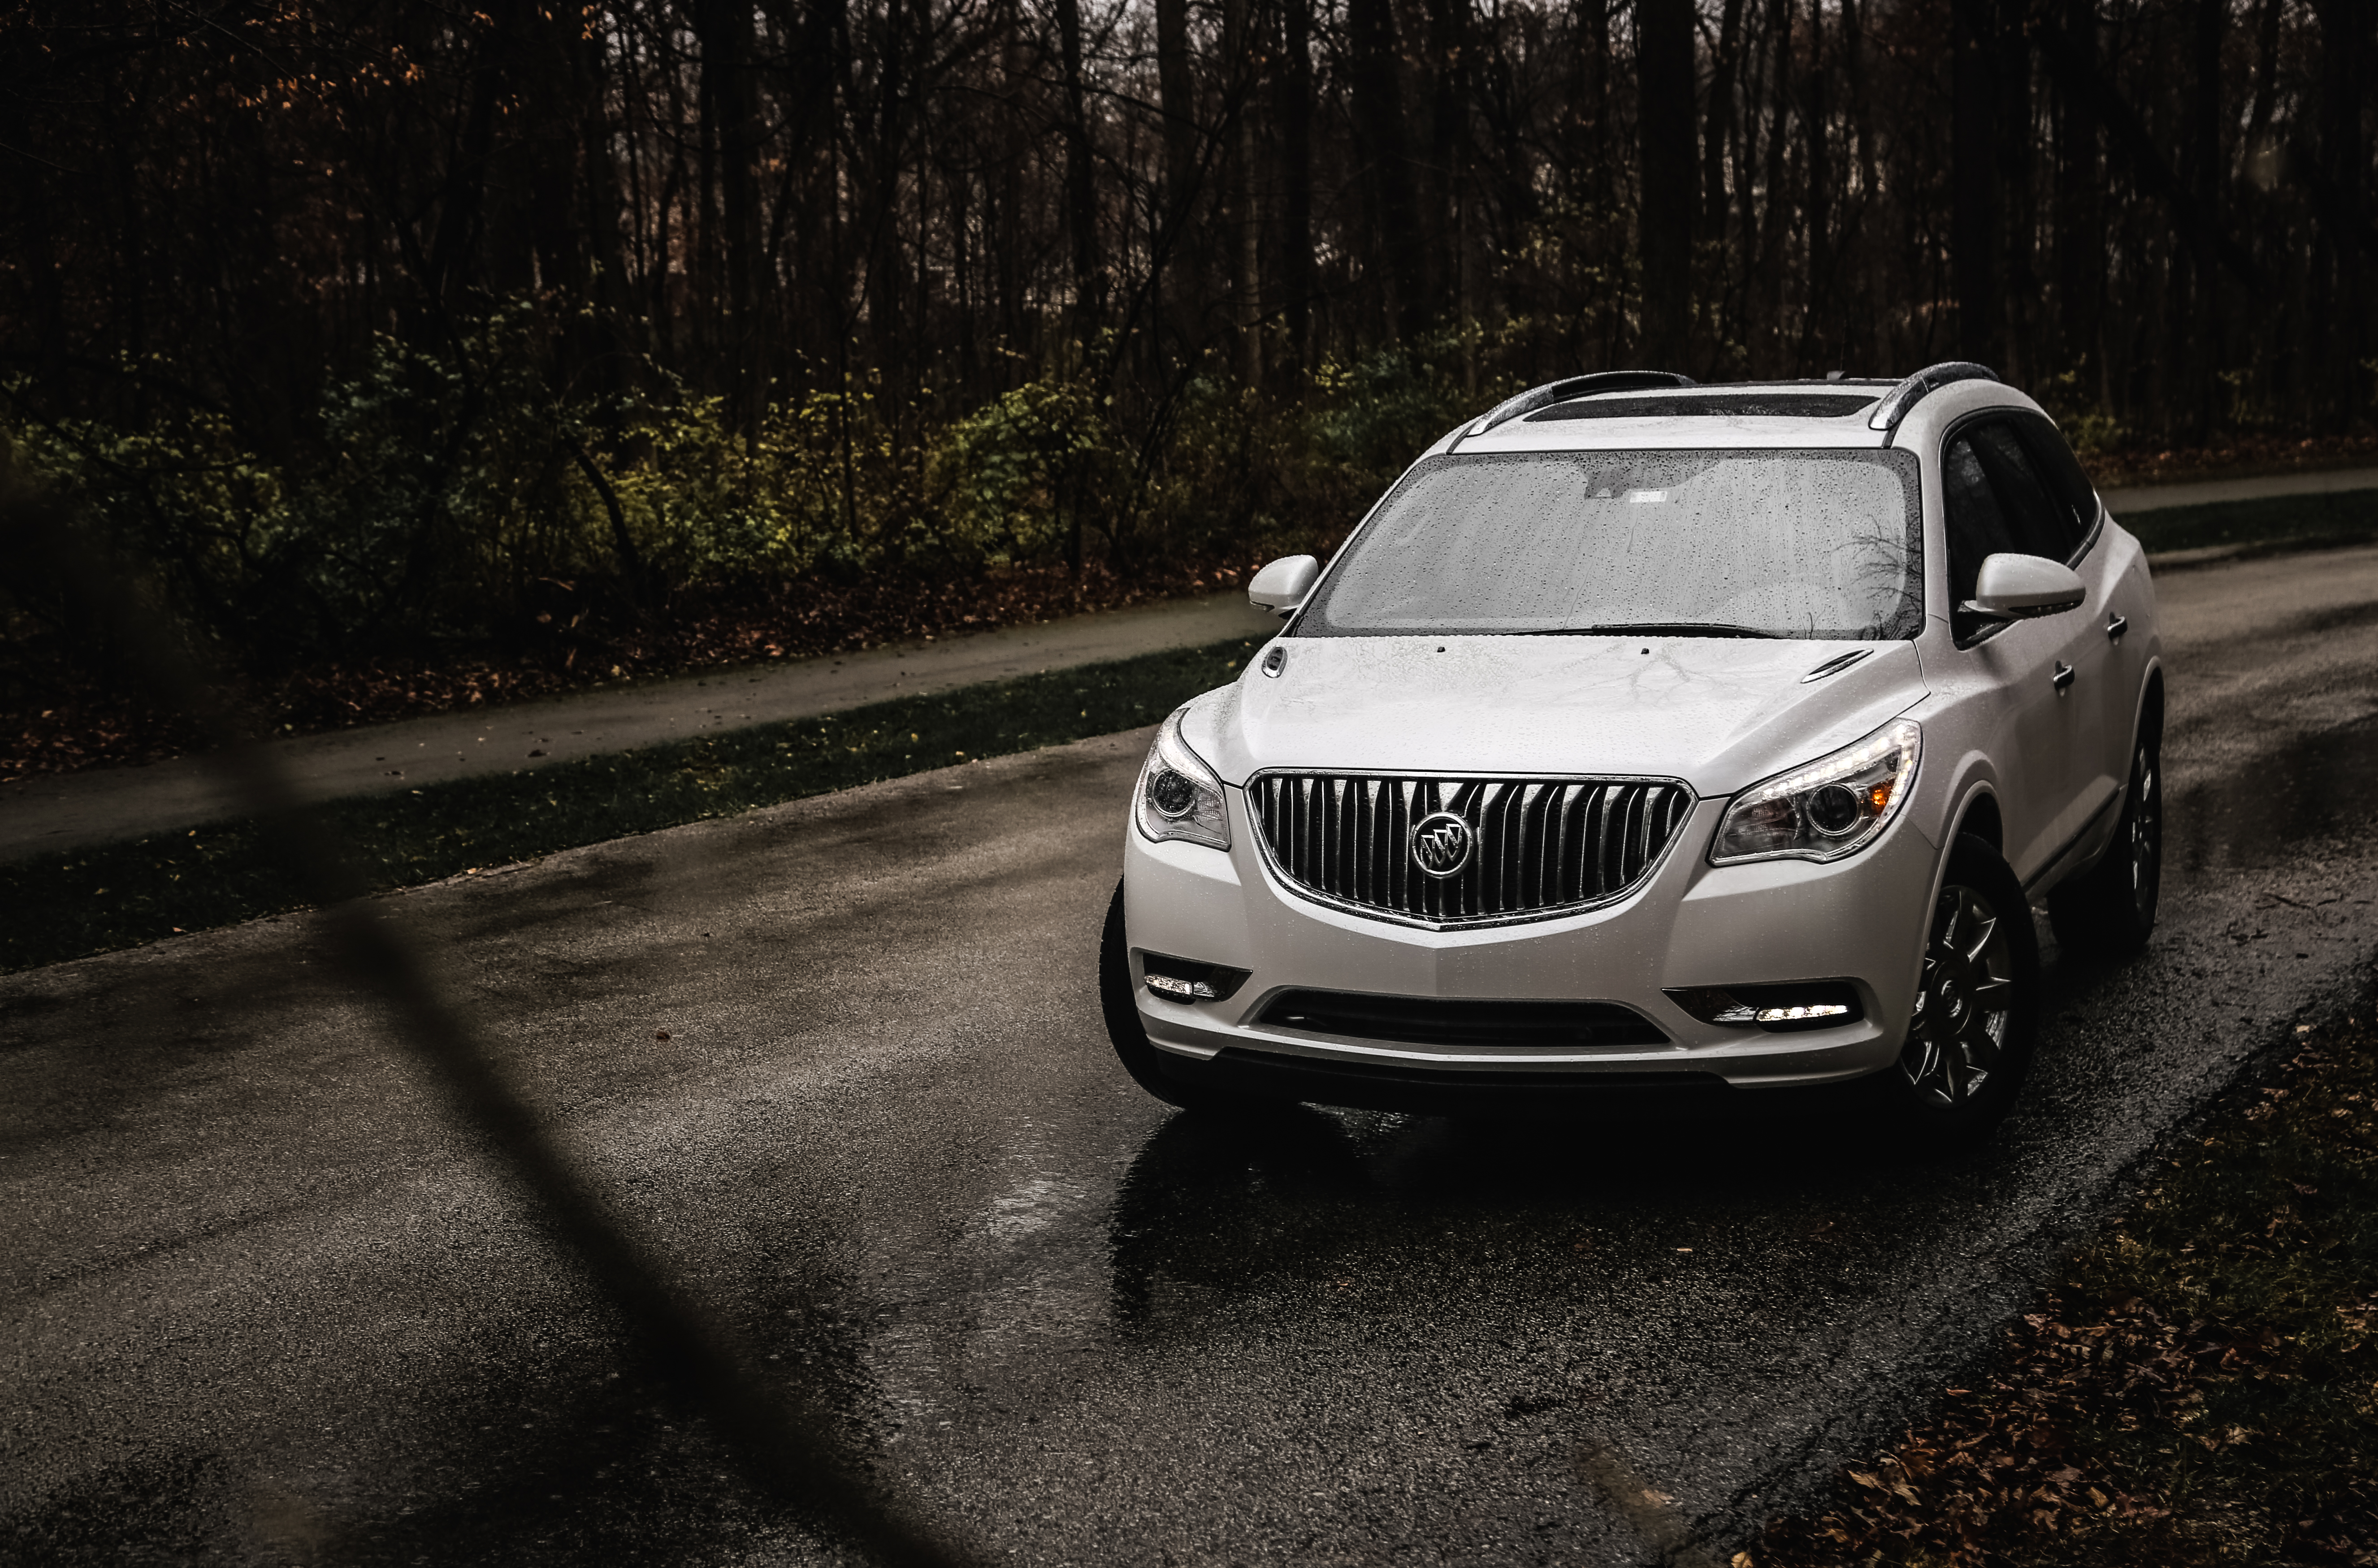 2016 Buick Enclave Review Why Kickin It Old School Isn T Bad At All Life Is Poppin